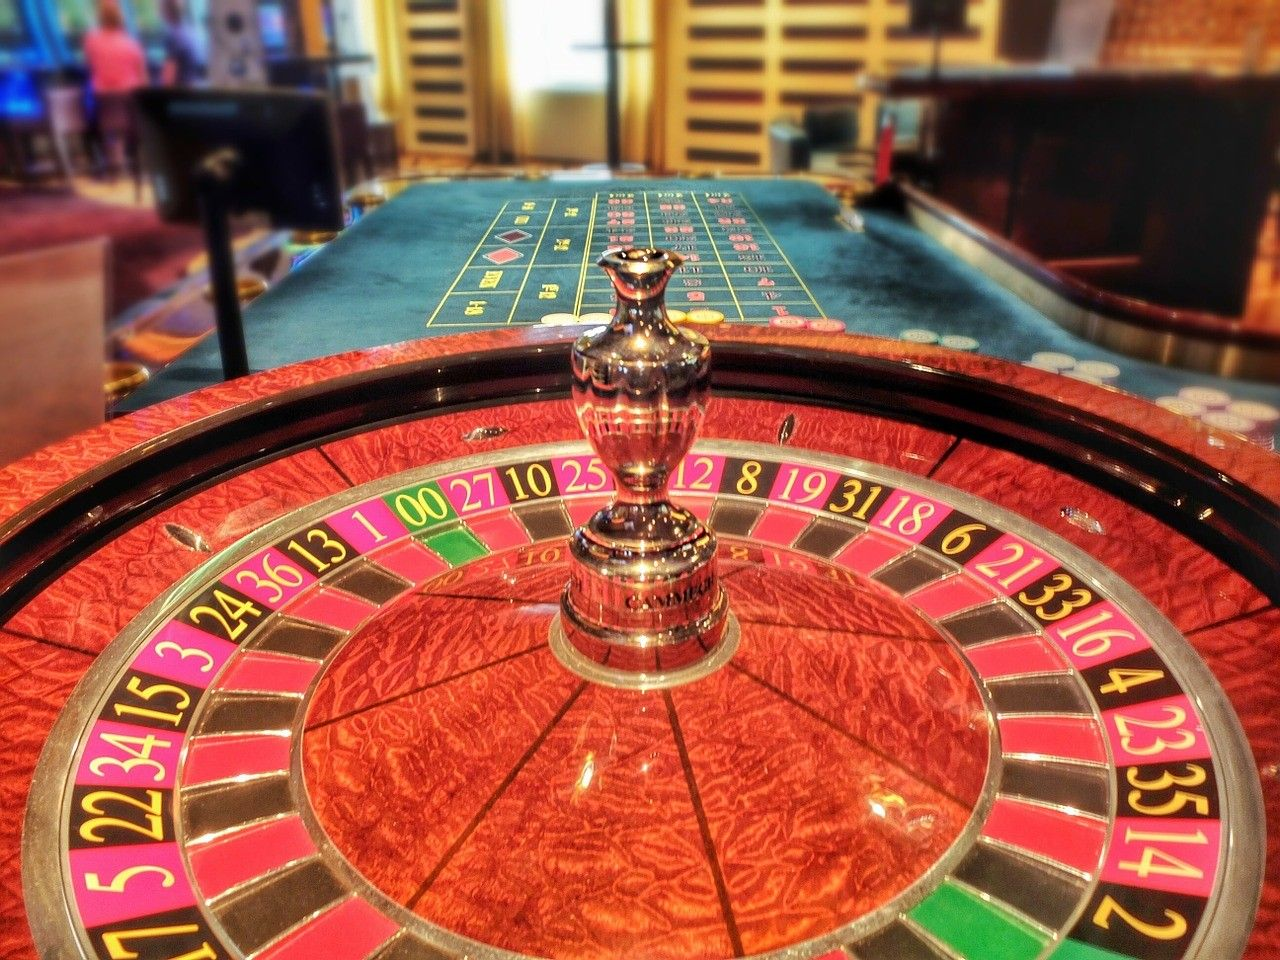 Roulette vegas betting rules nouchy mining bitcoins